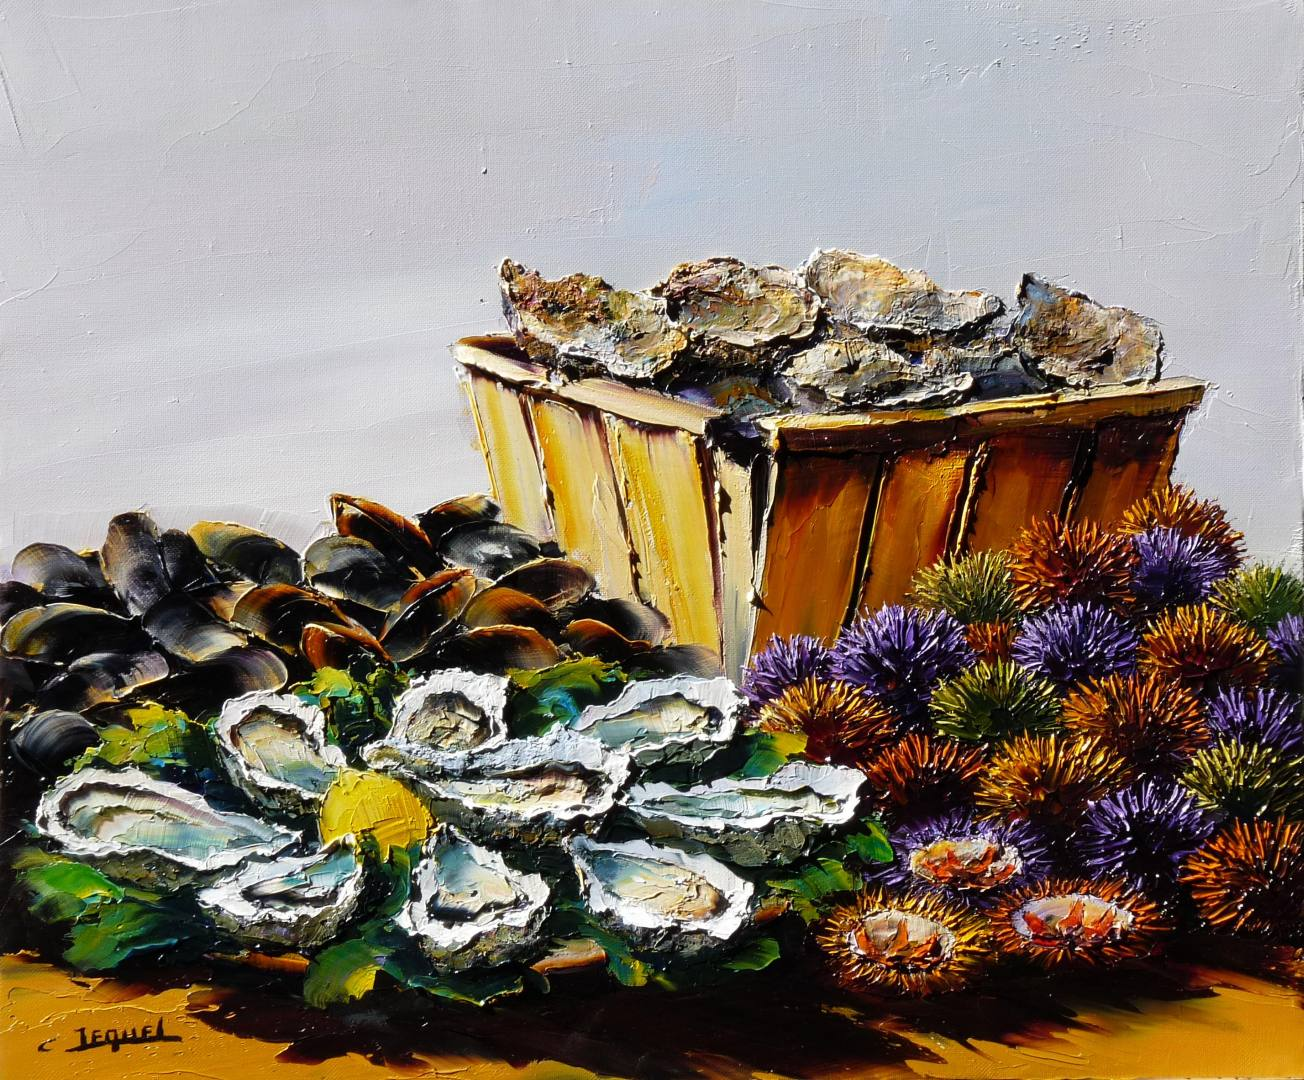 Coquillages et fruits de mer